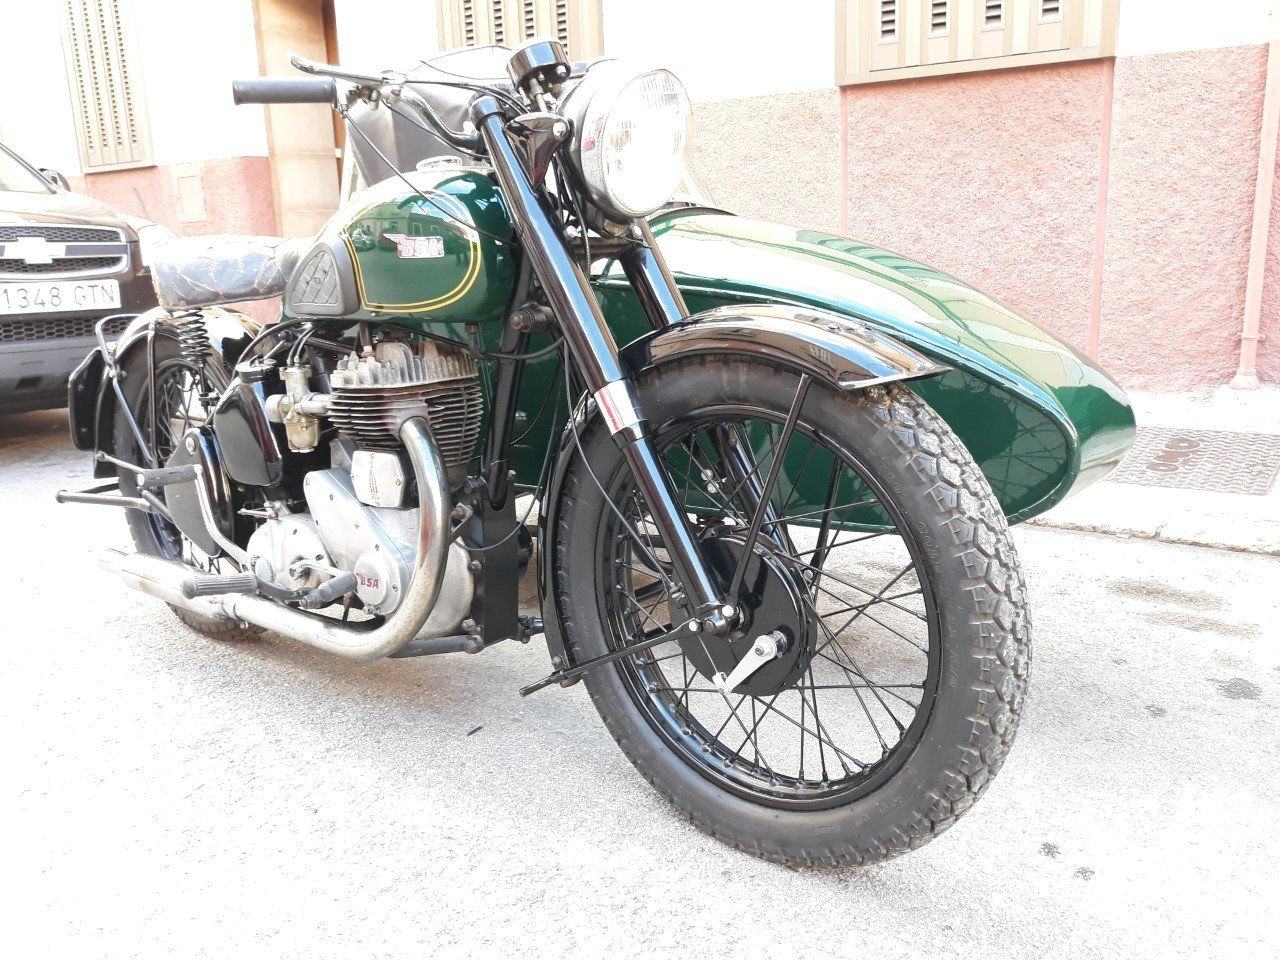 1954 BSA M21  600cc  year  with  sidecar - v.g.c. For Sale (picture 2 of 6)